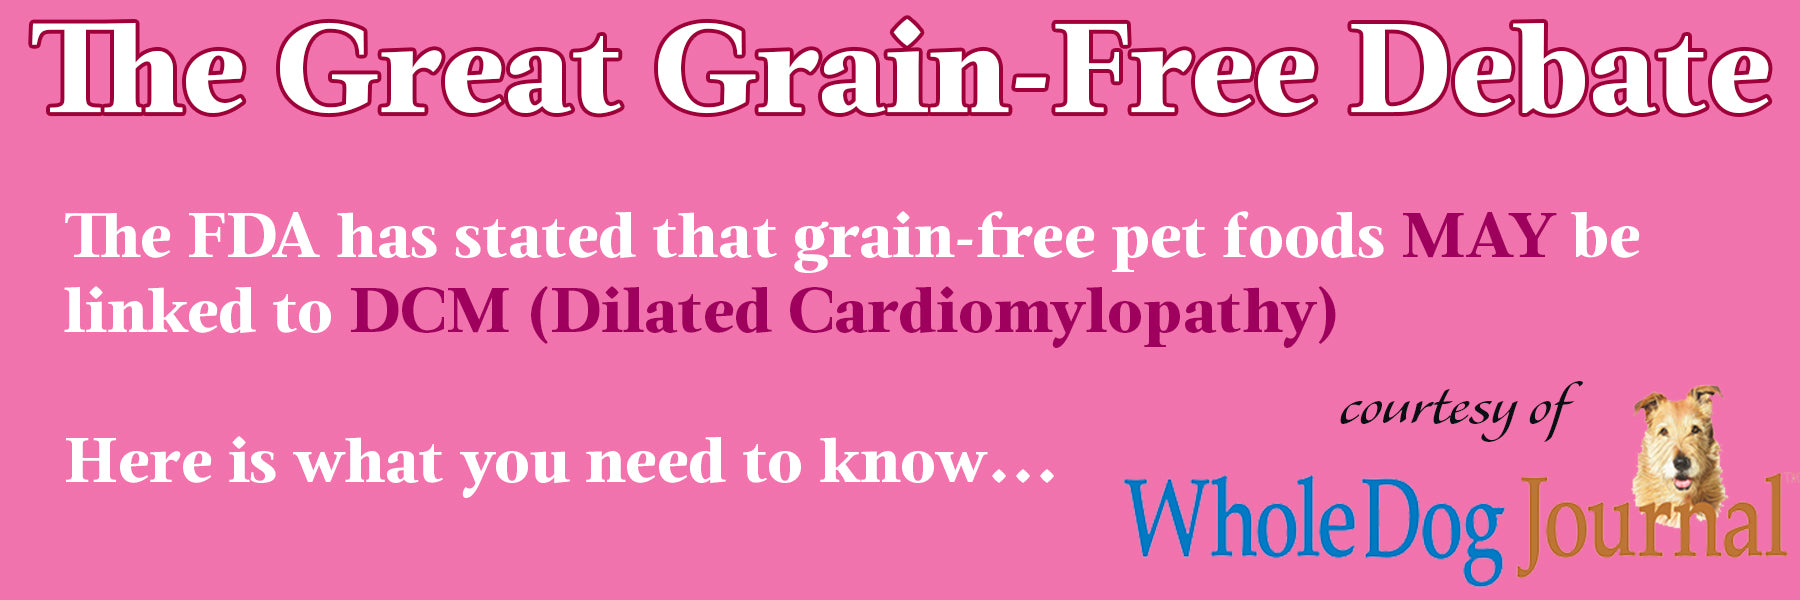 Dilated Cardiomylopathy information banner